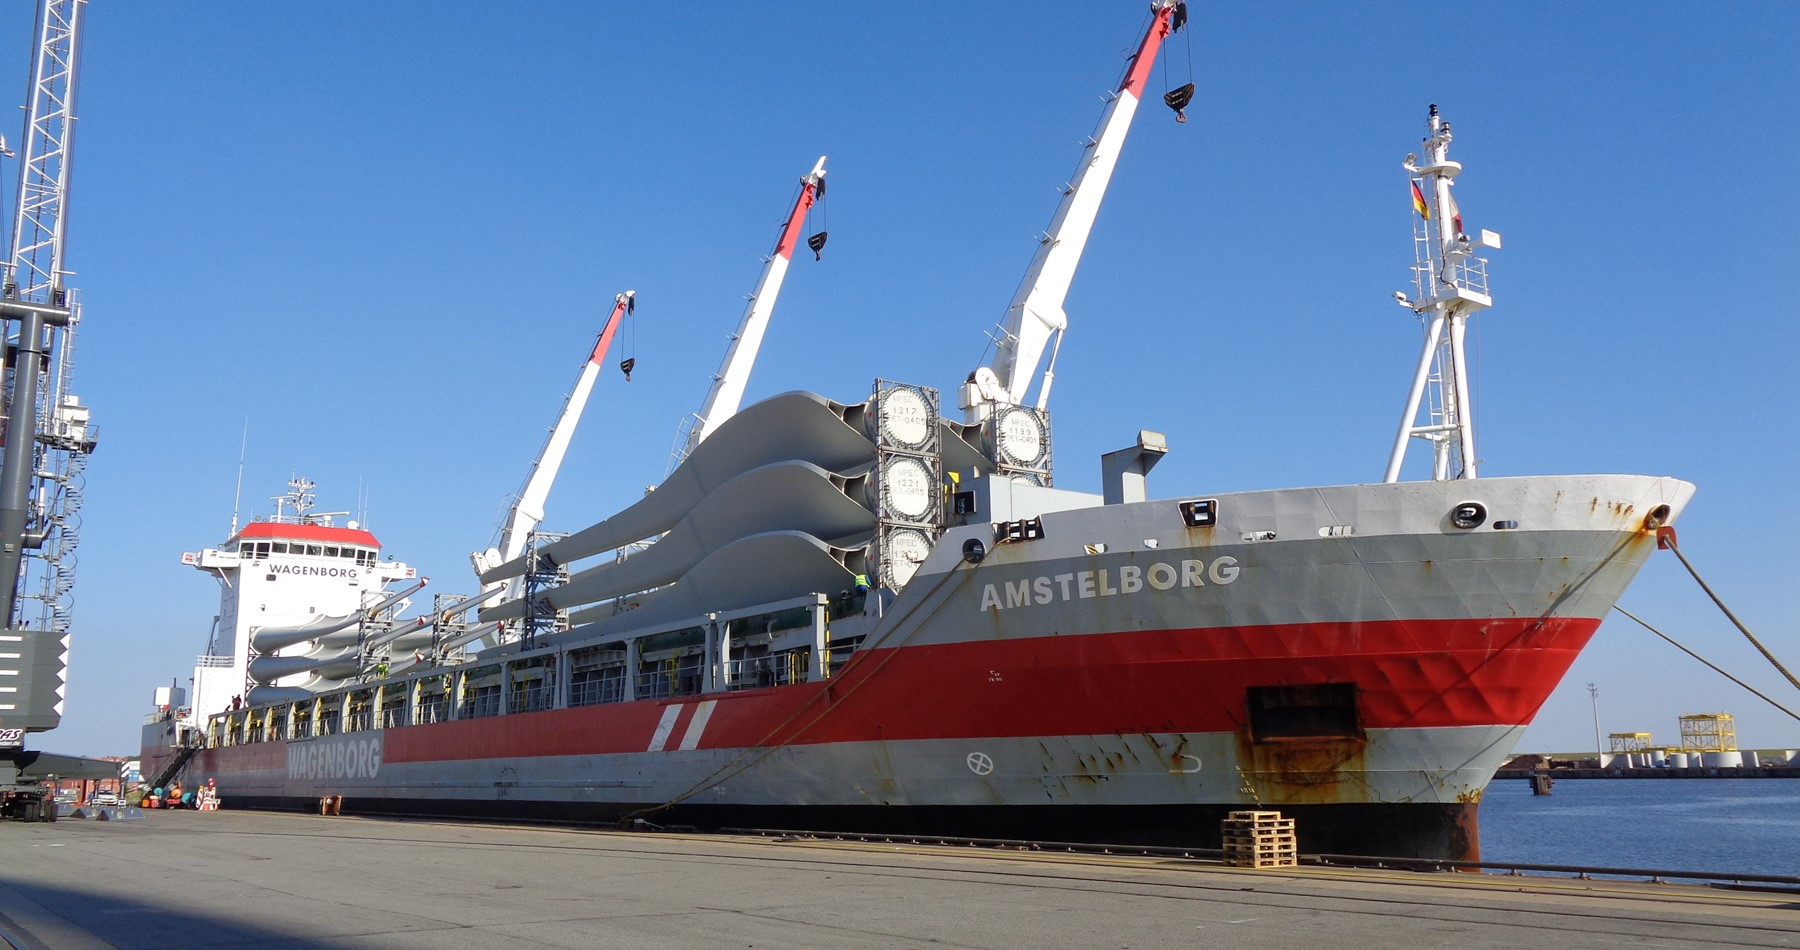 m.v. Amstelborg delivers wind turbines at the Great Lakes